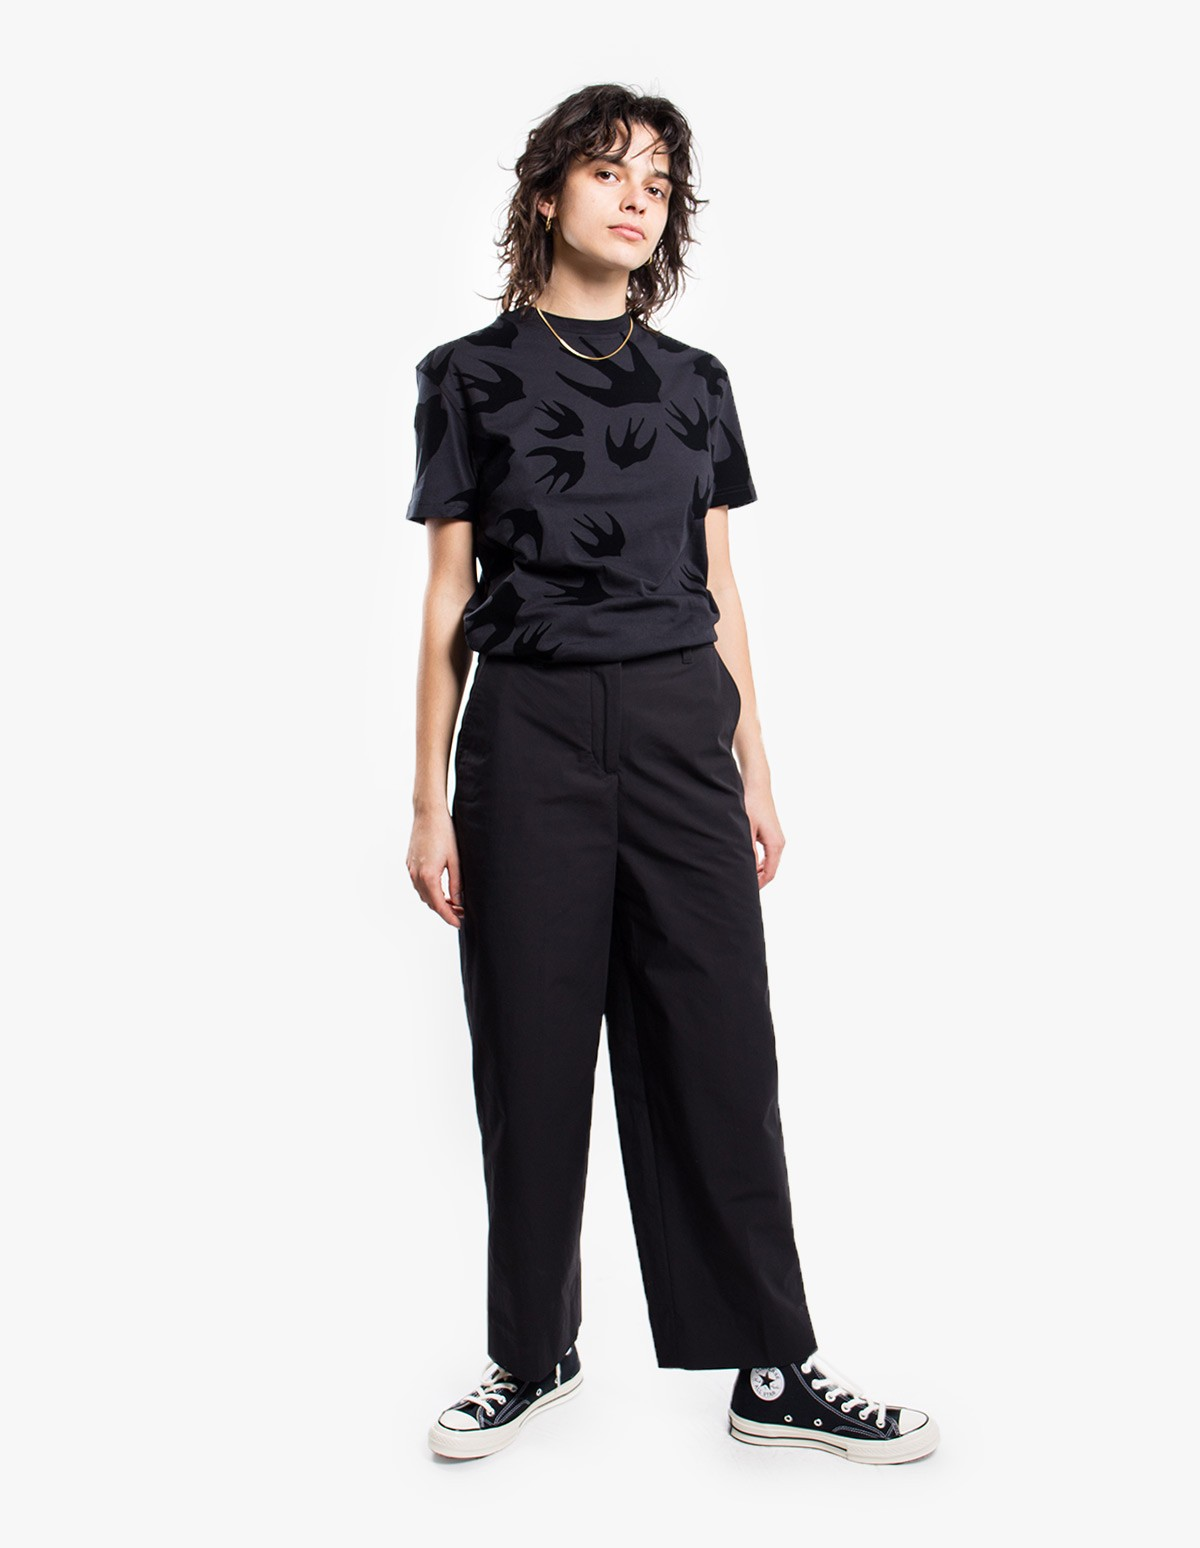 McQ Alexander McQueen Classic T-shirt in Black on Darkest Black